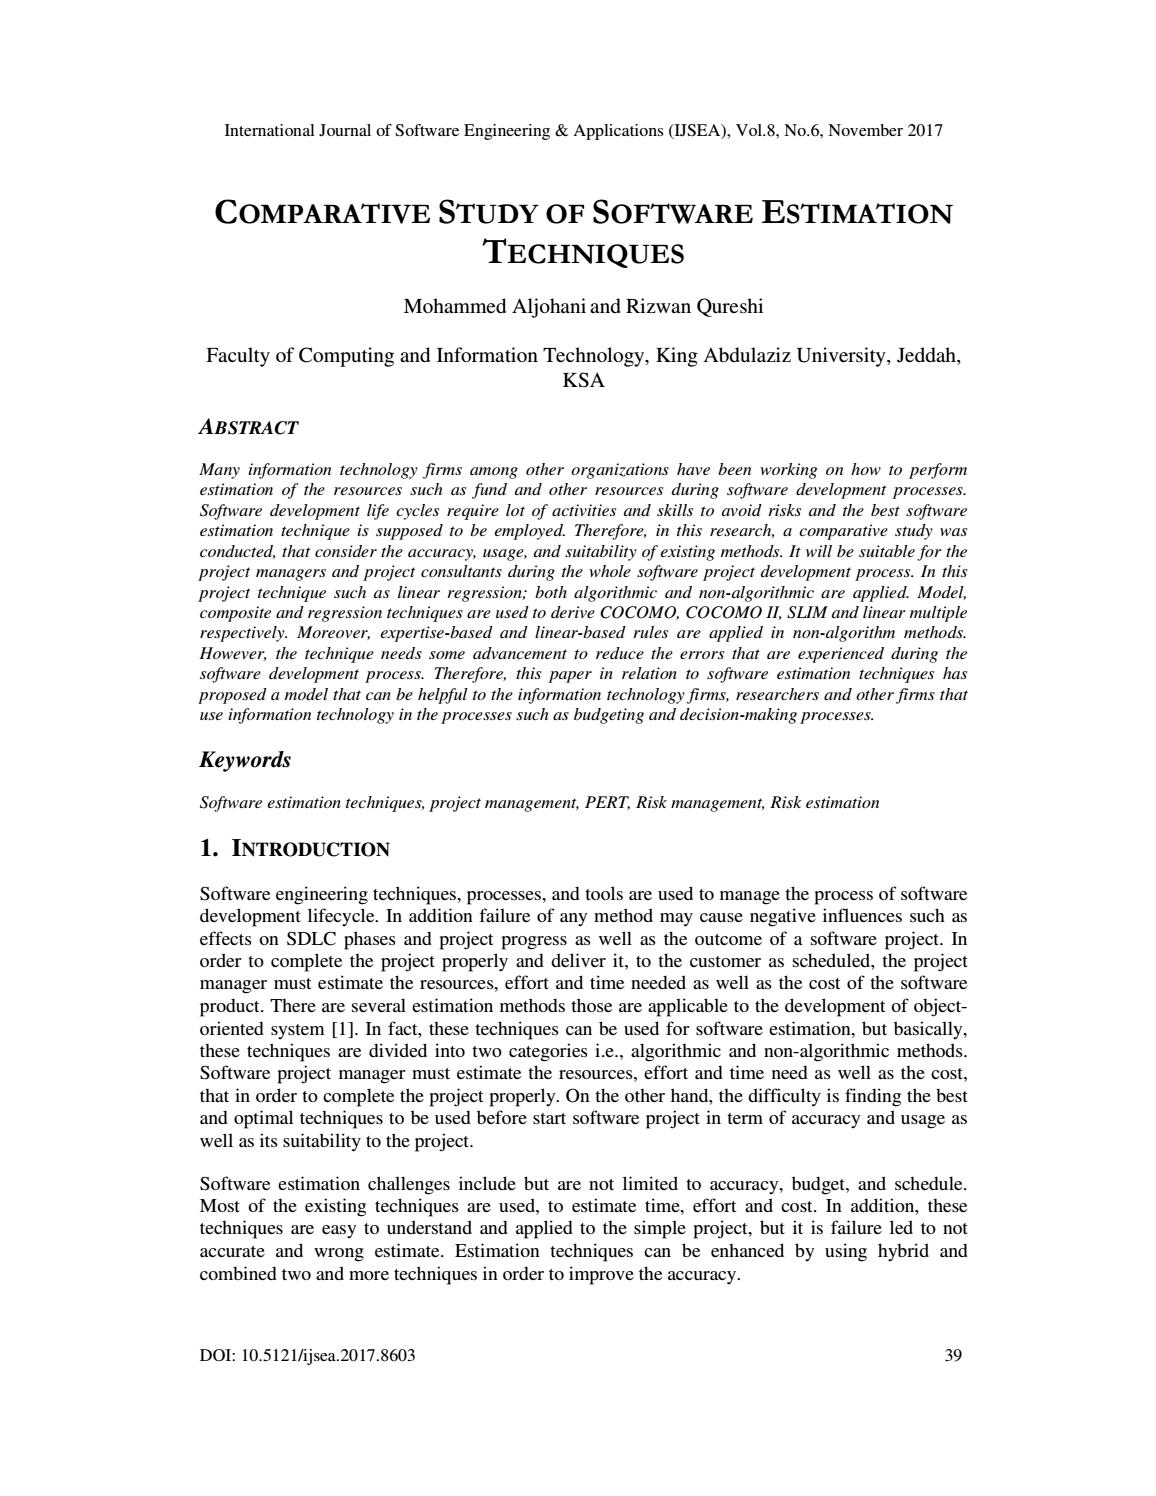 Comparative Study of Software Estimation Techniques by